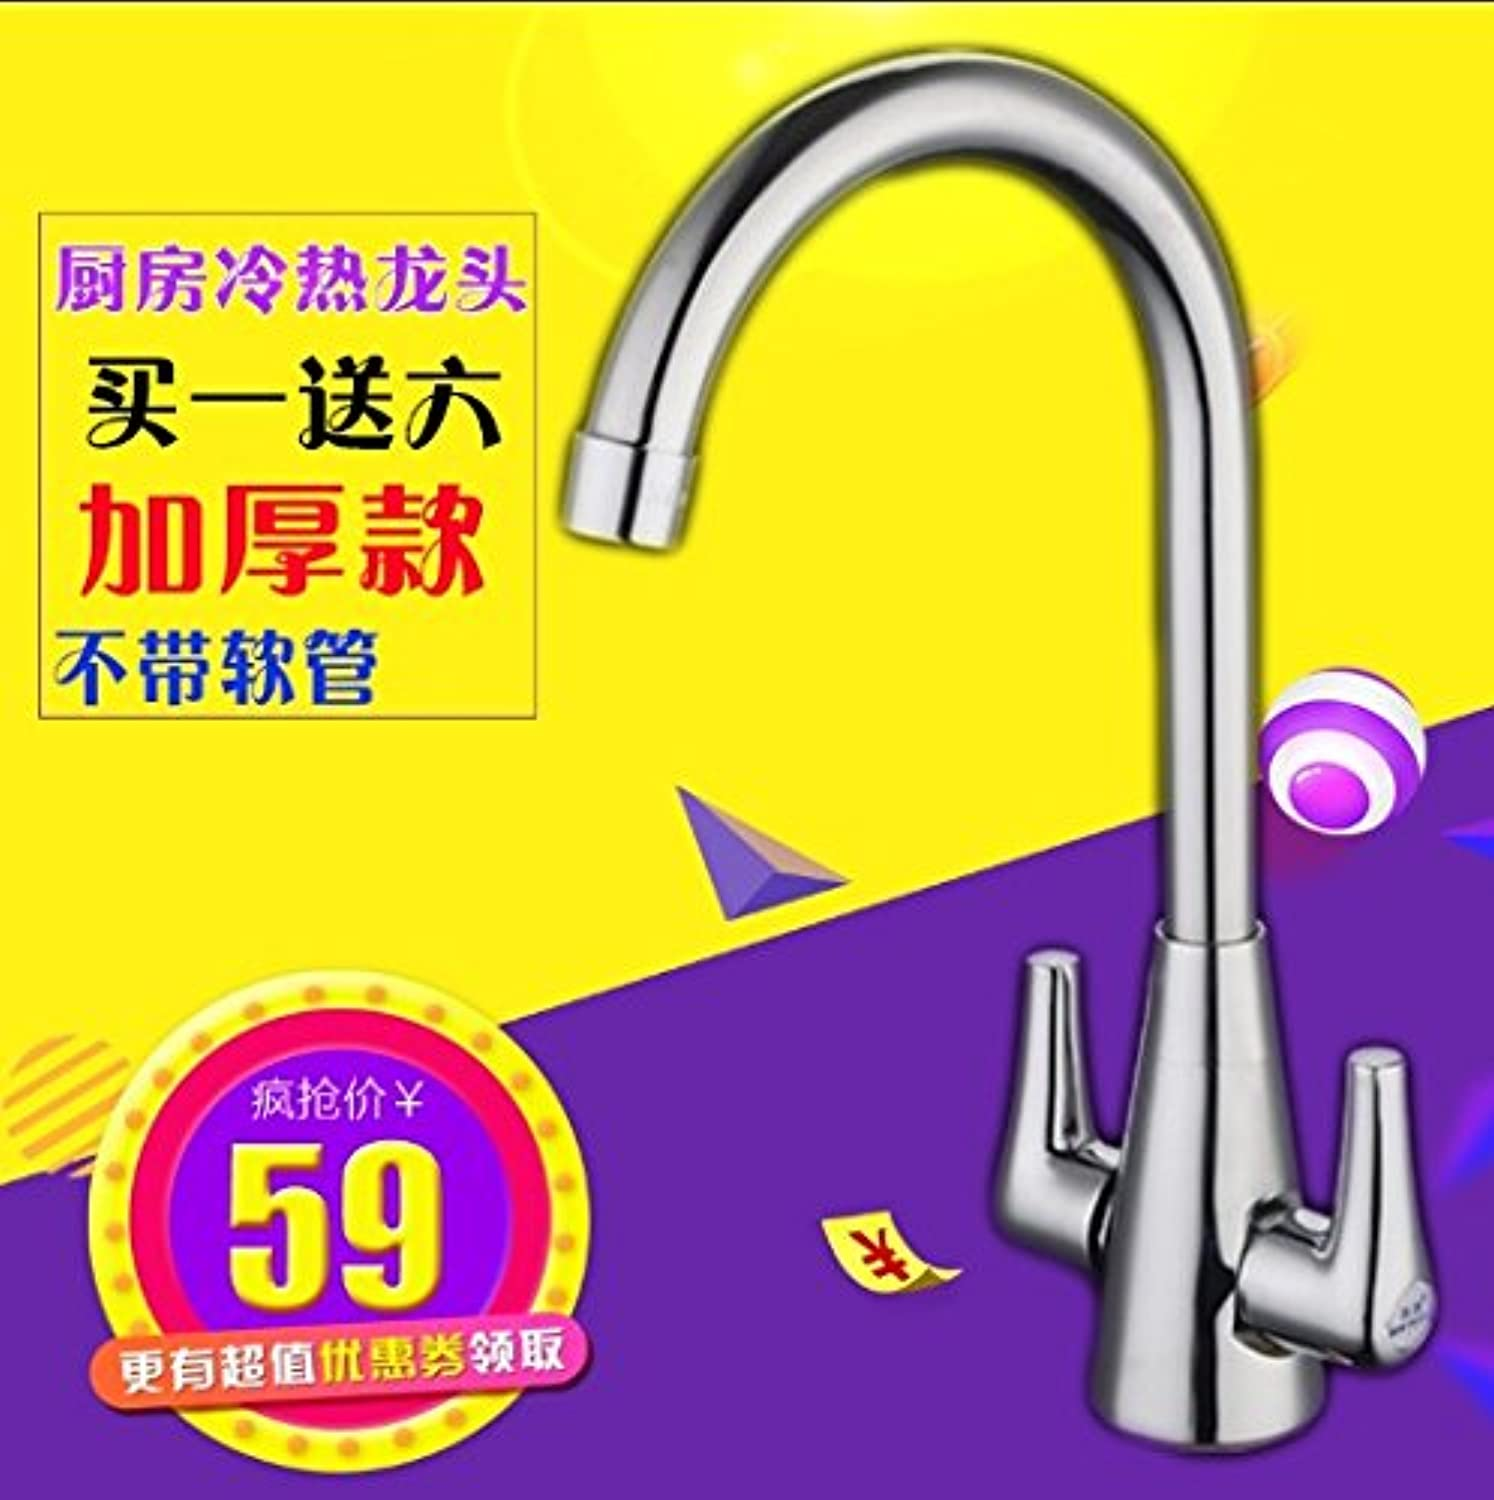 Gyps Faucet Single Lever Basin Mixer Tap Bathroom Tap Double Room - Open Kitchen Tap Hot and Cold Full Copper Single Hole Sink Mixer The